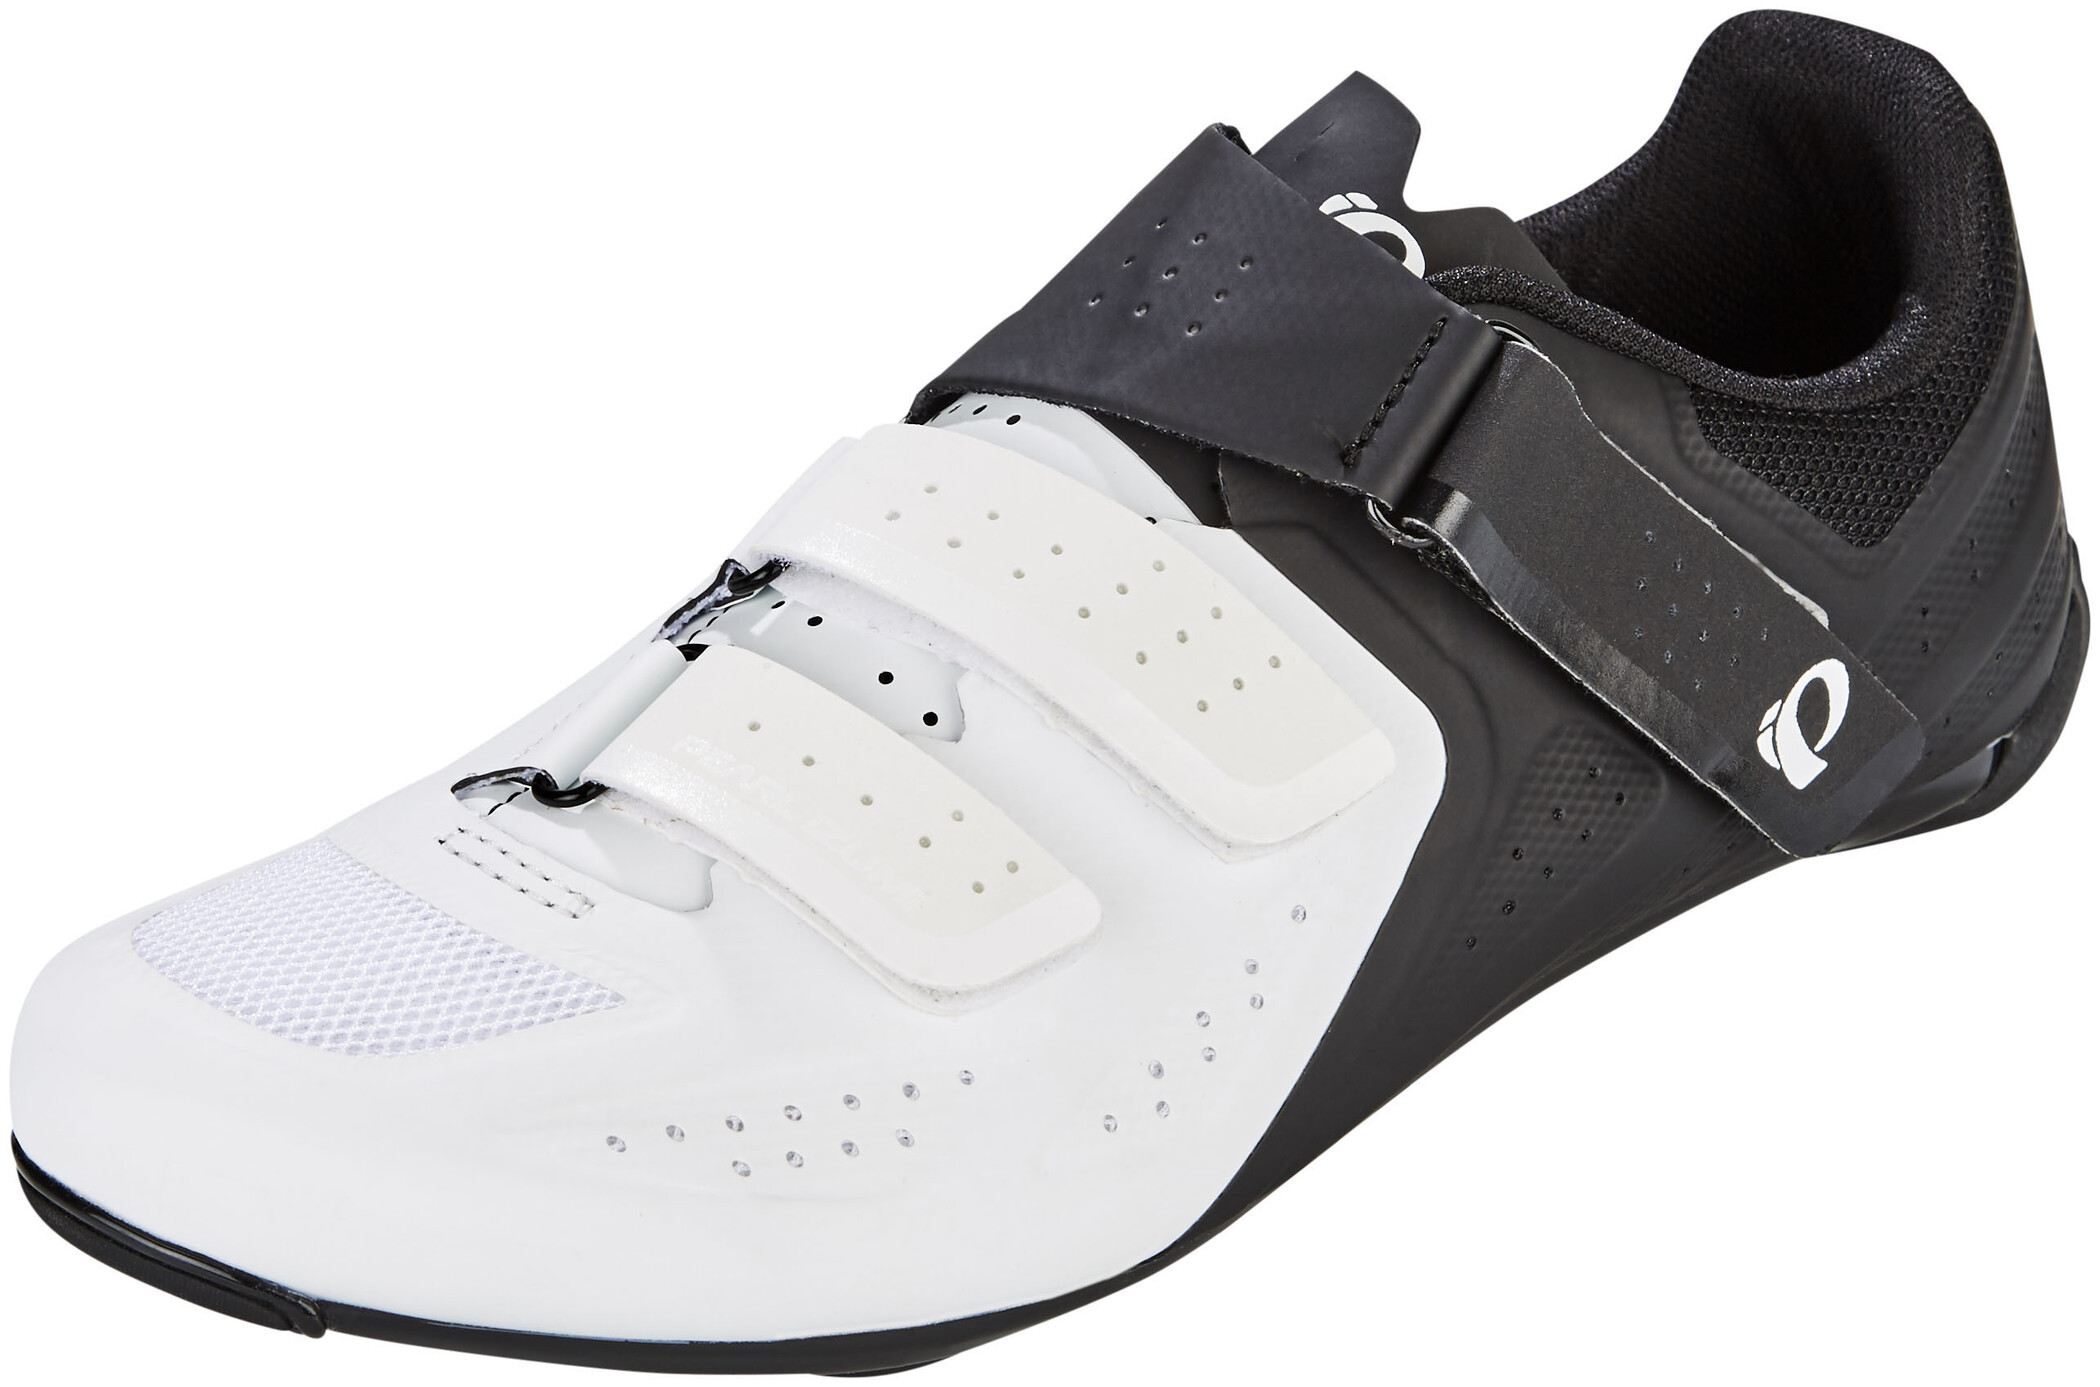 save off 958c2 d29a1 PEARL iZUMi Select Road V5 Shoes Men white black .jpg